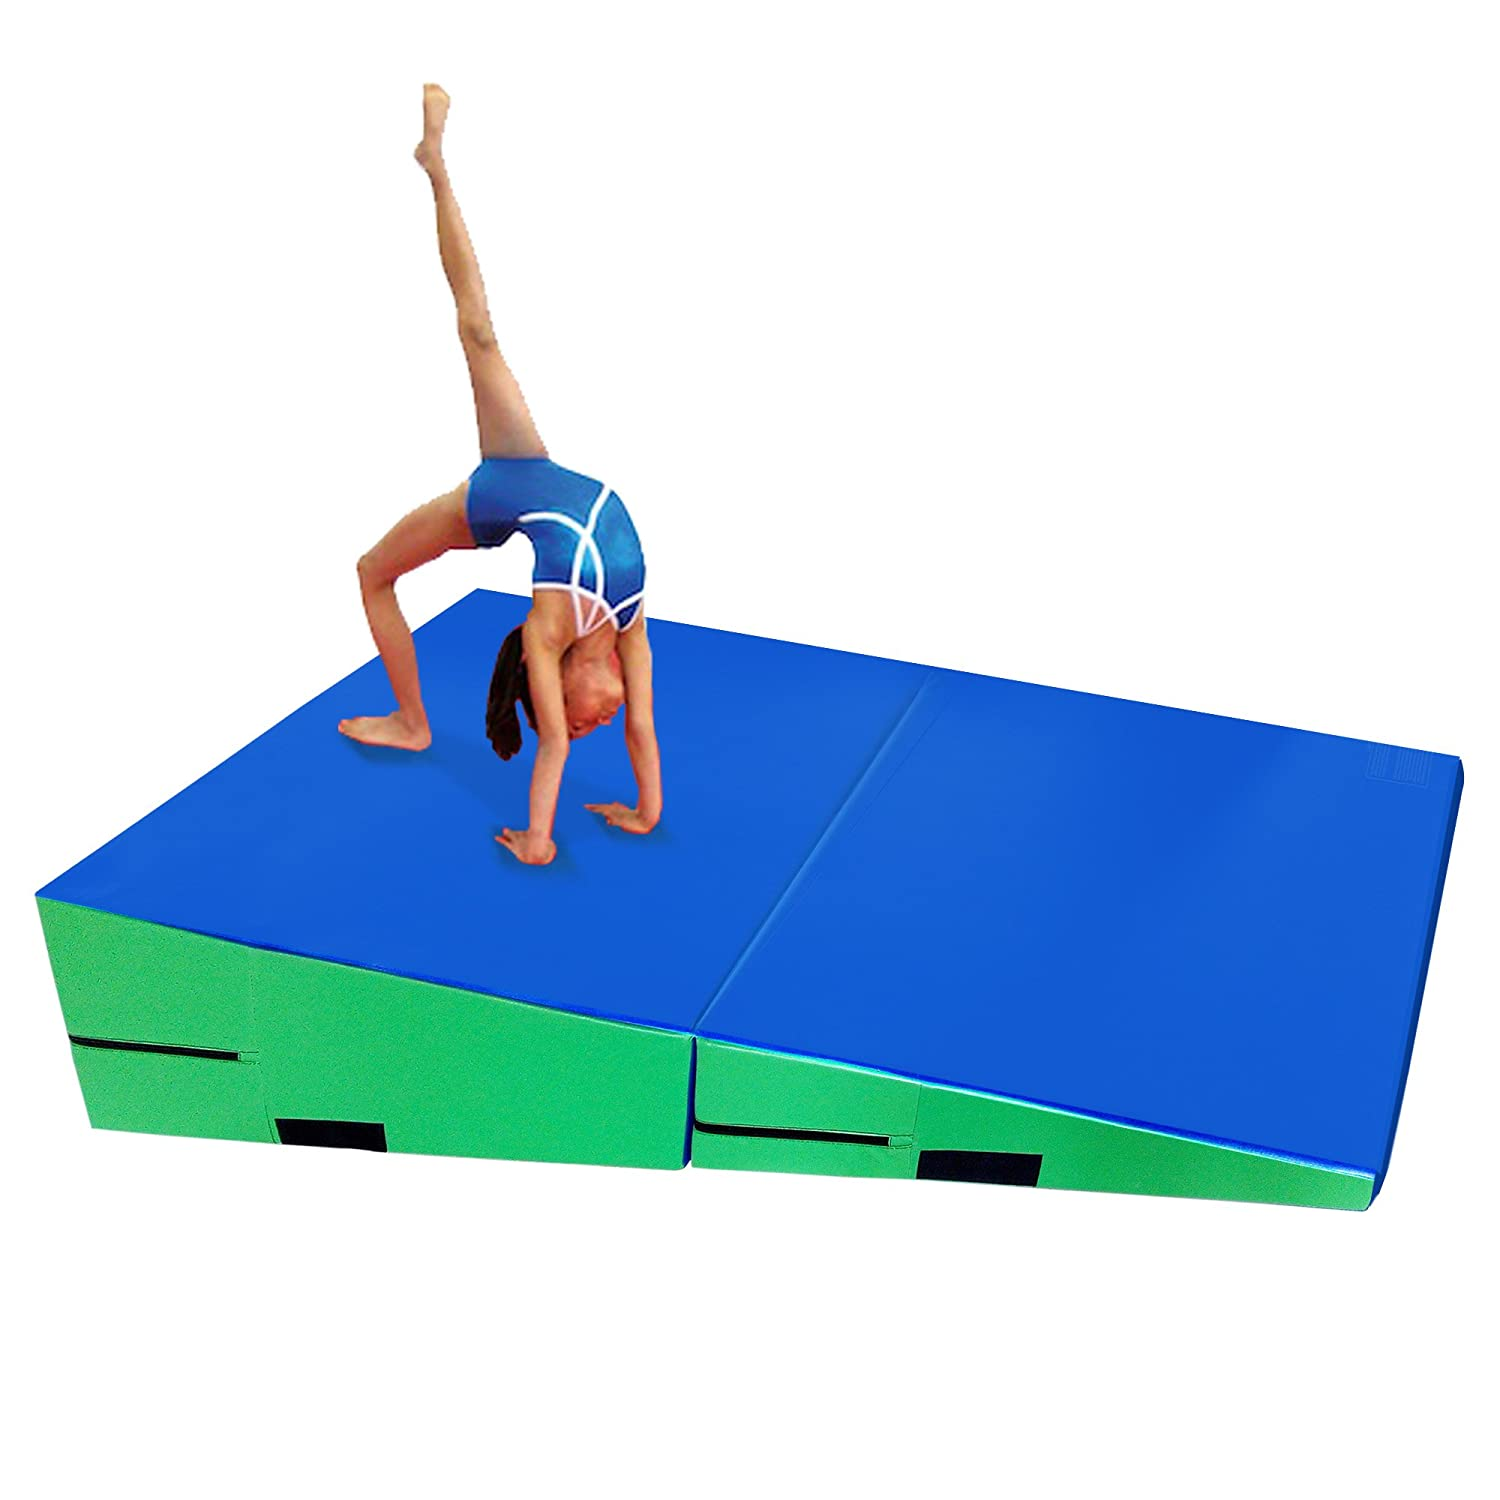 dollamur mat product gymnastics flexi big discountpurasilk image com mats x roll